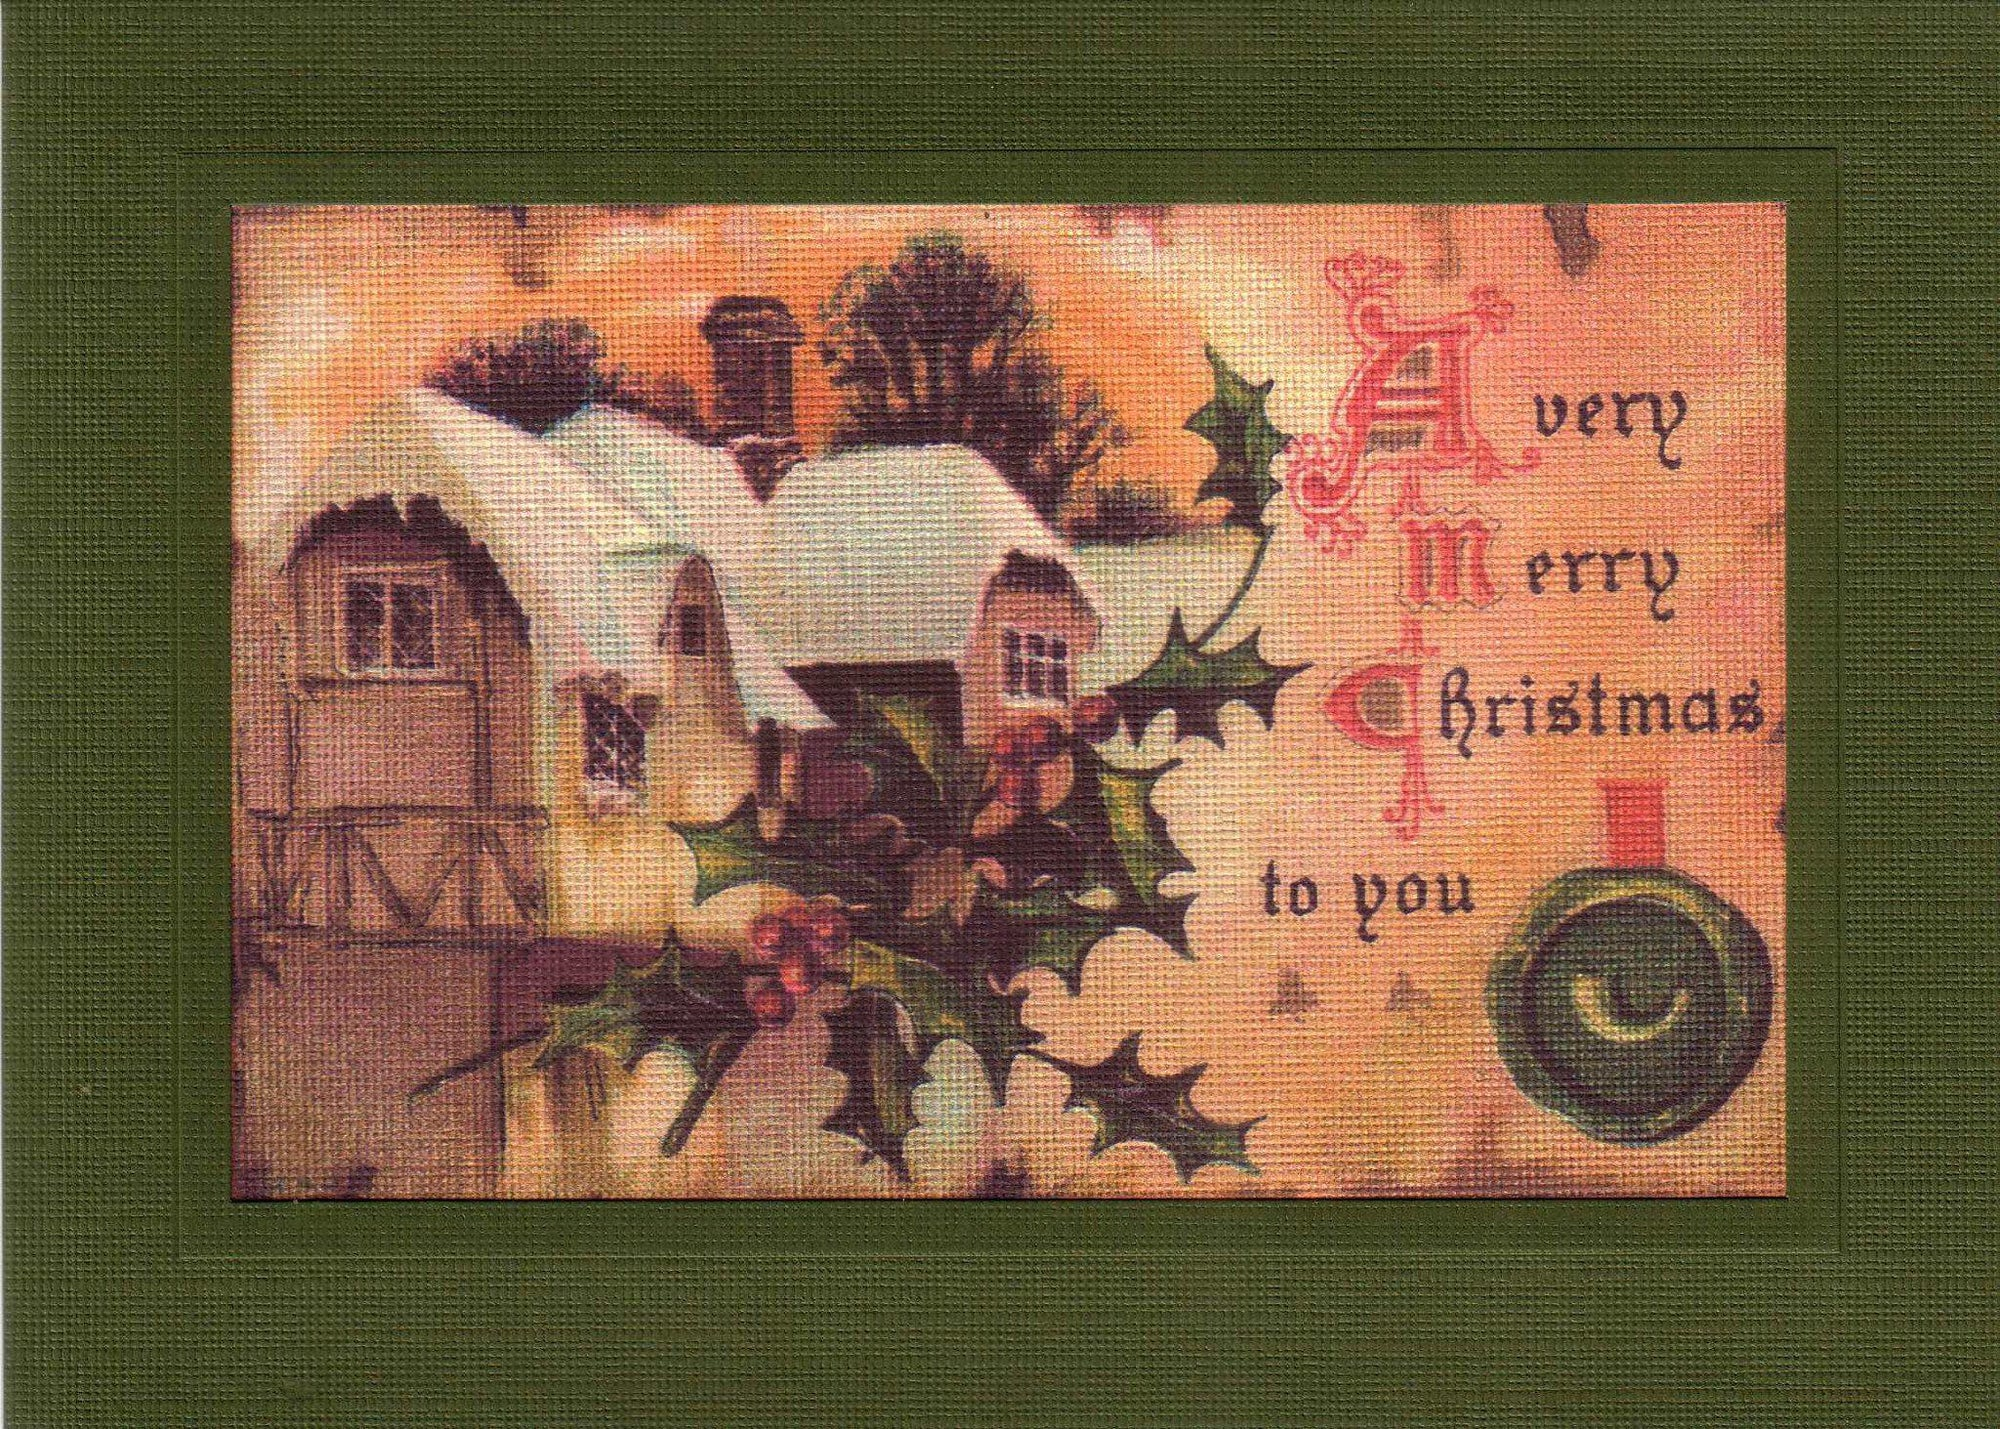 A Very Merry Christmas to You-Greetings from the Past-Plymouth Cards